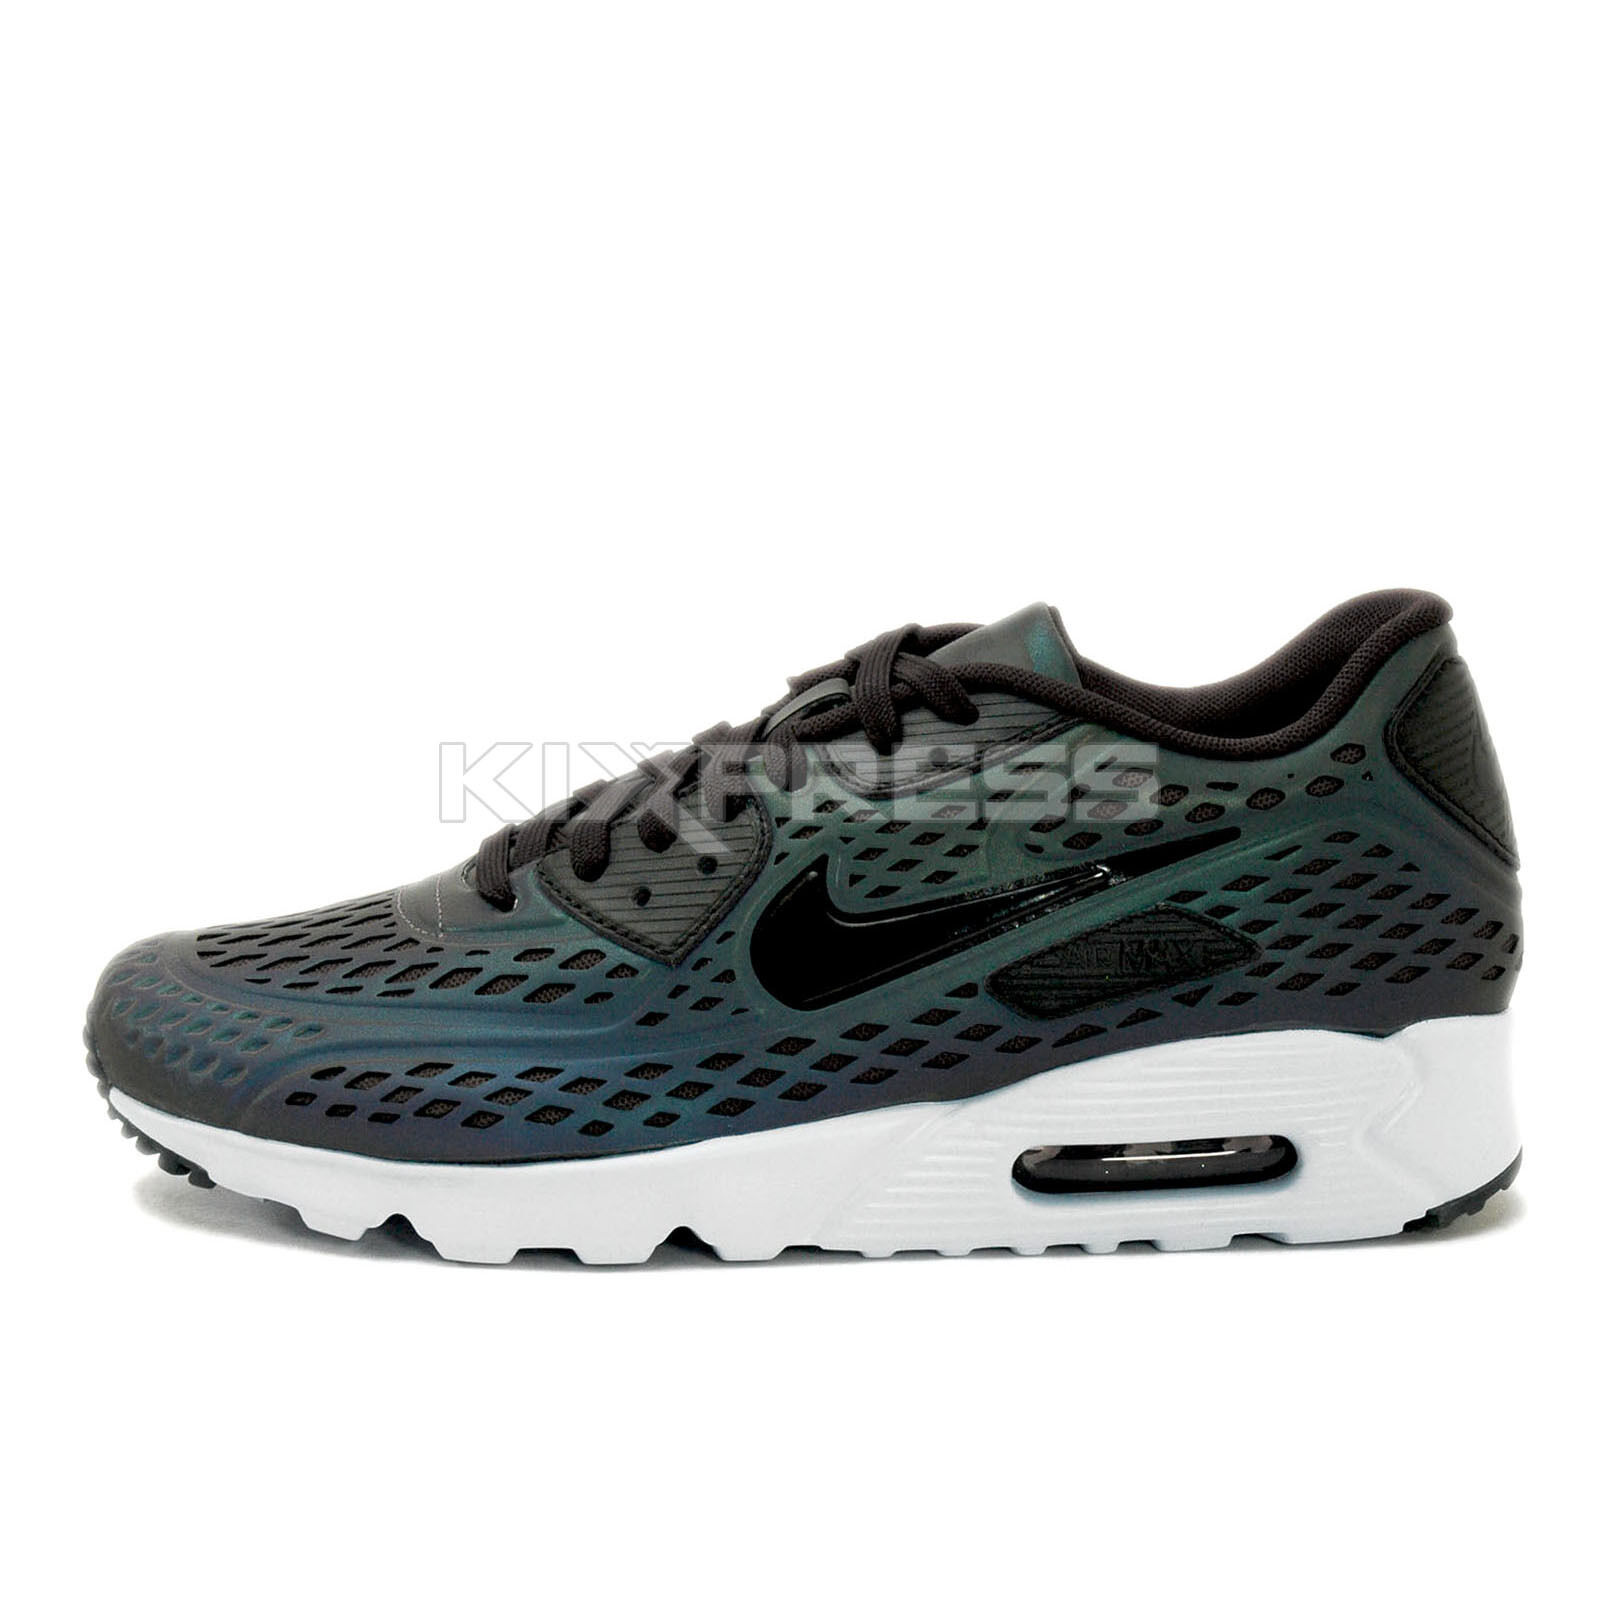 Nike Air Max 90 Ultra Moire QS Price reduction NSW Running Iridescent Pack Pewter Cheap and beautiful fashion